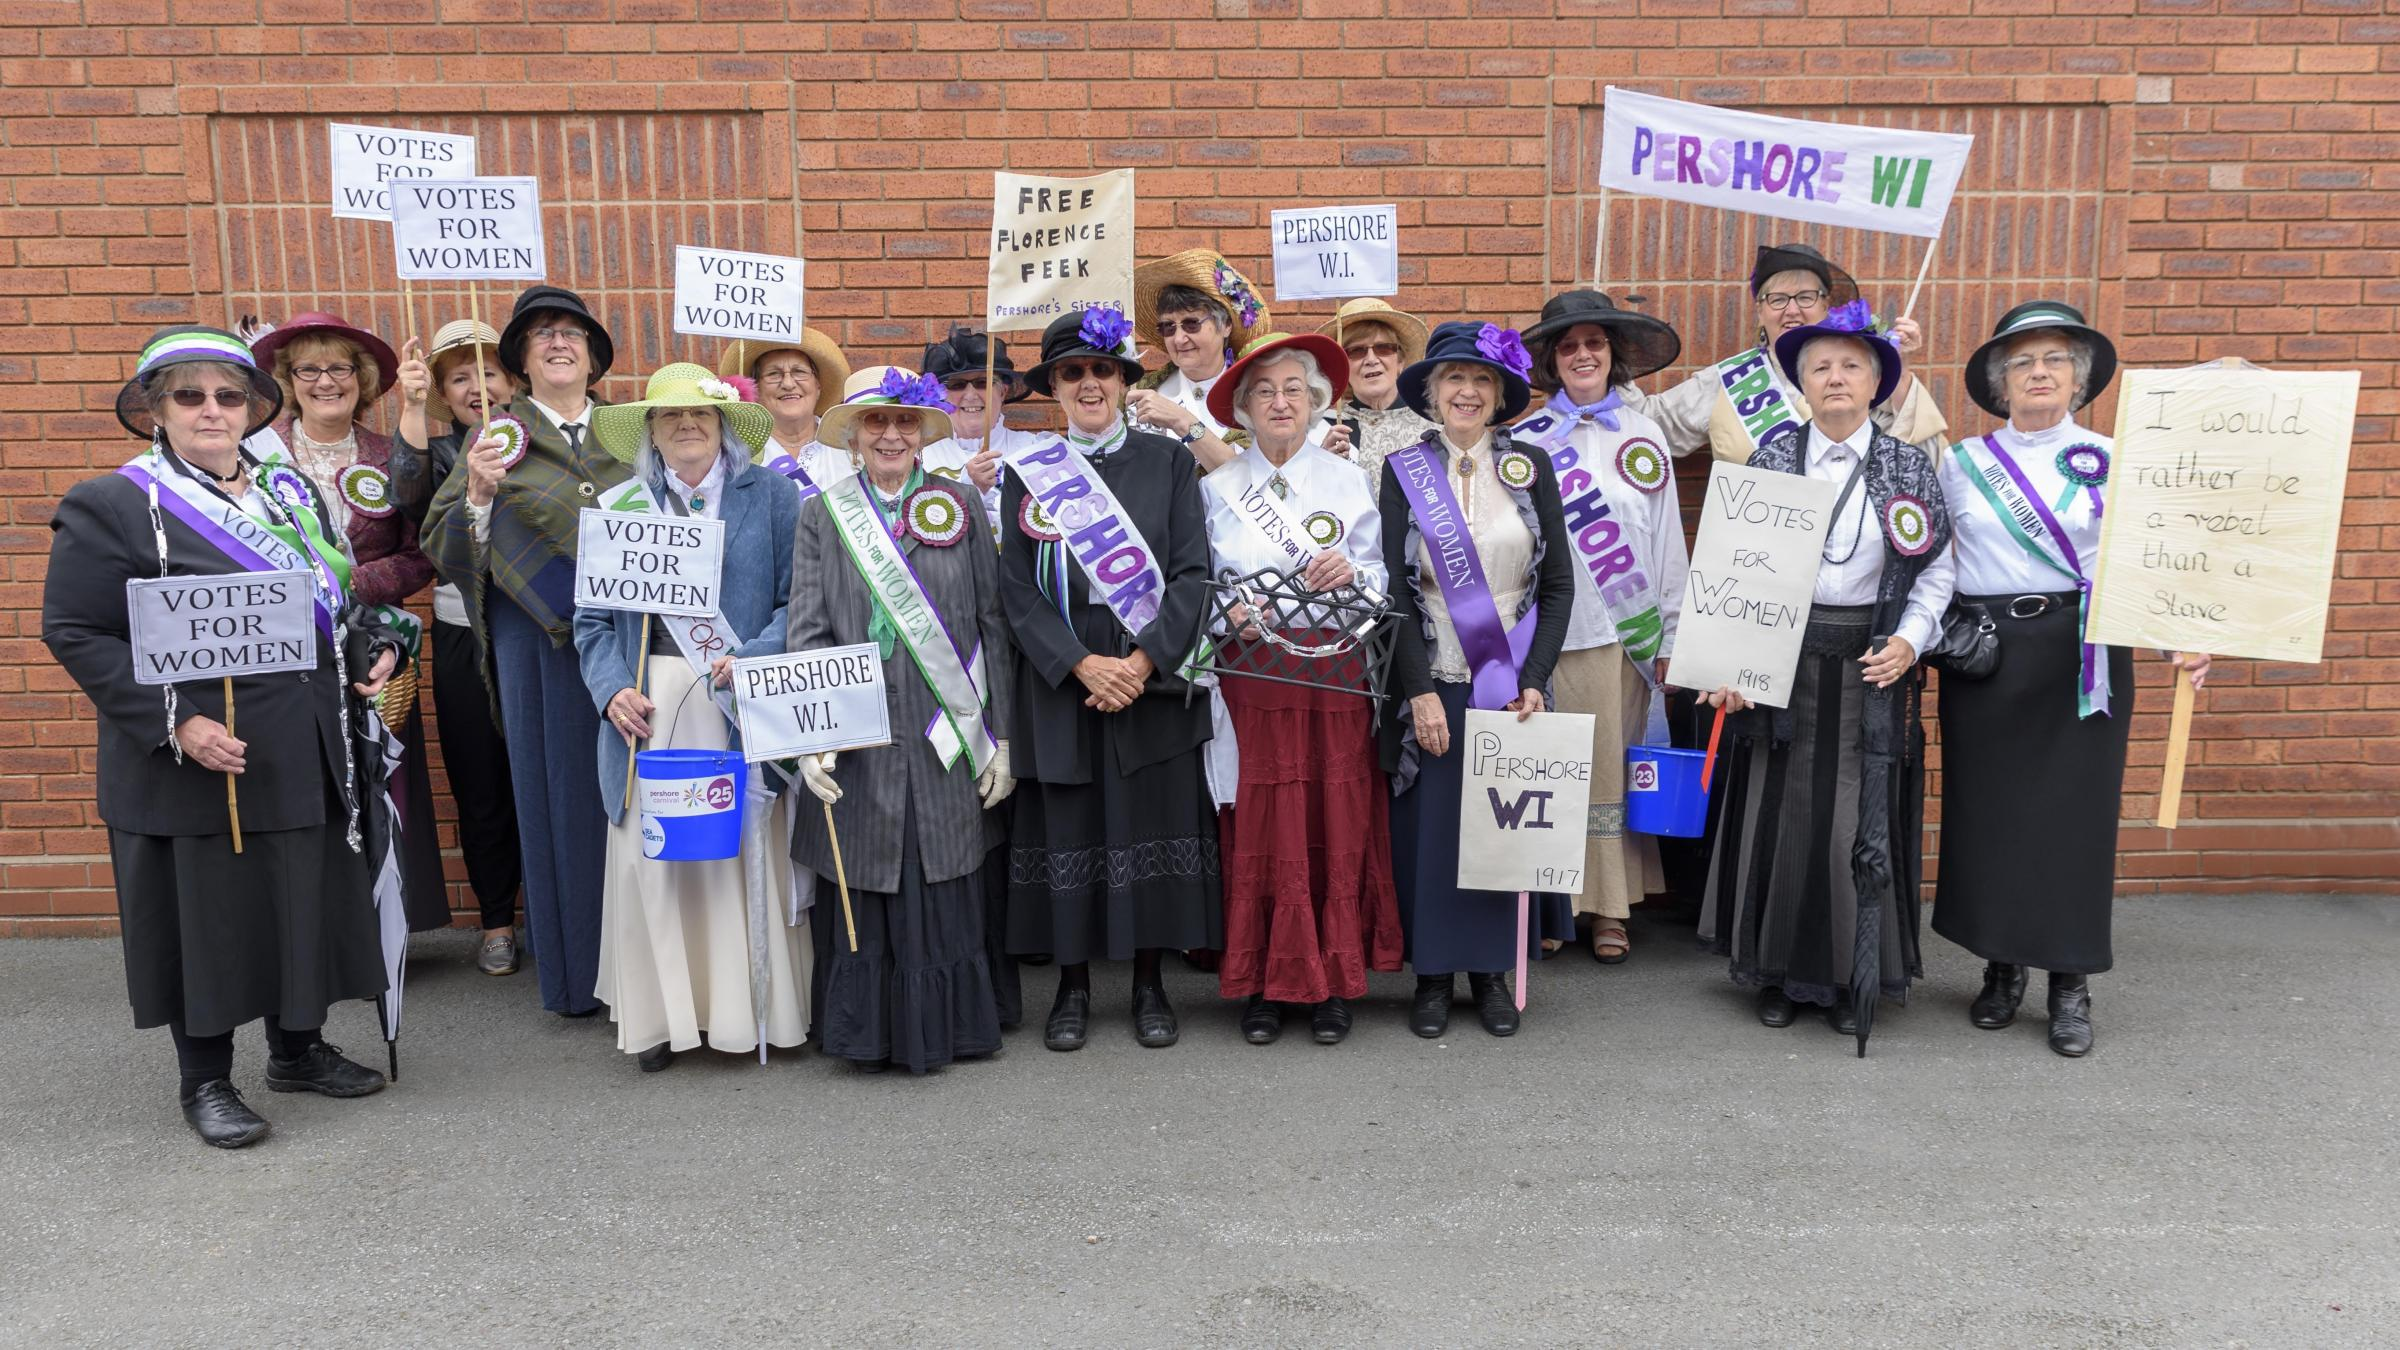 Votes for Women - Pershore WI